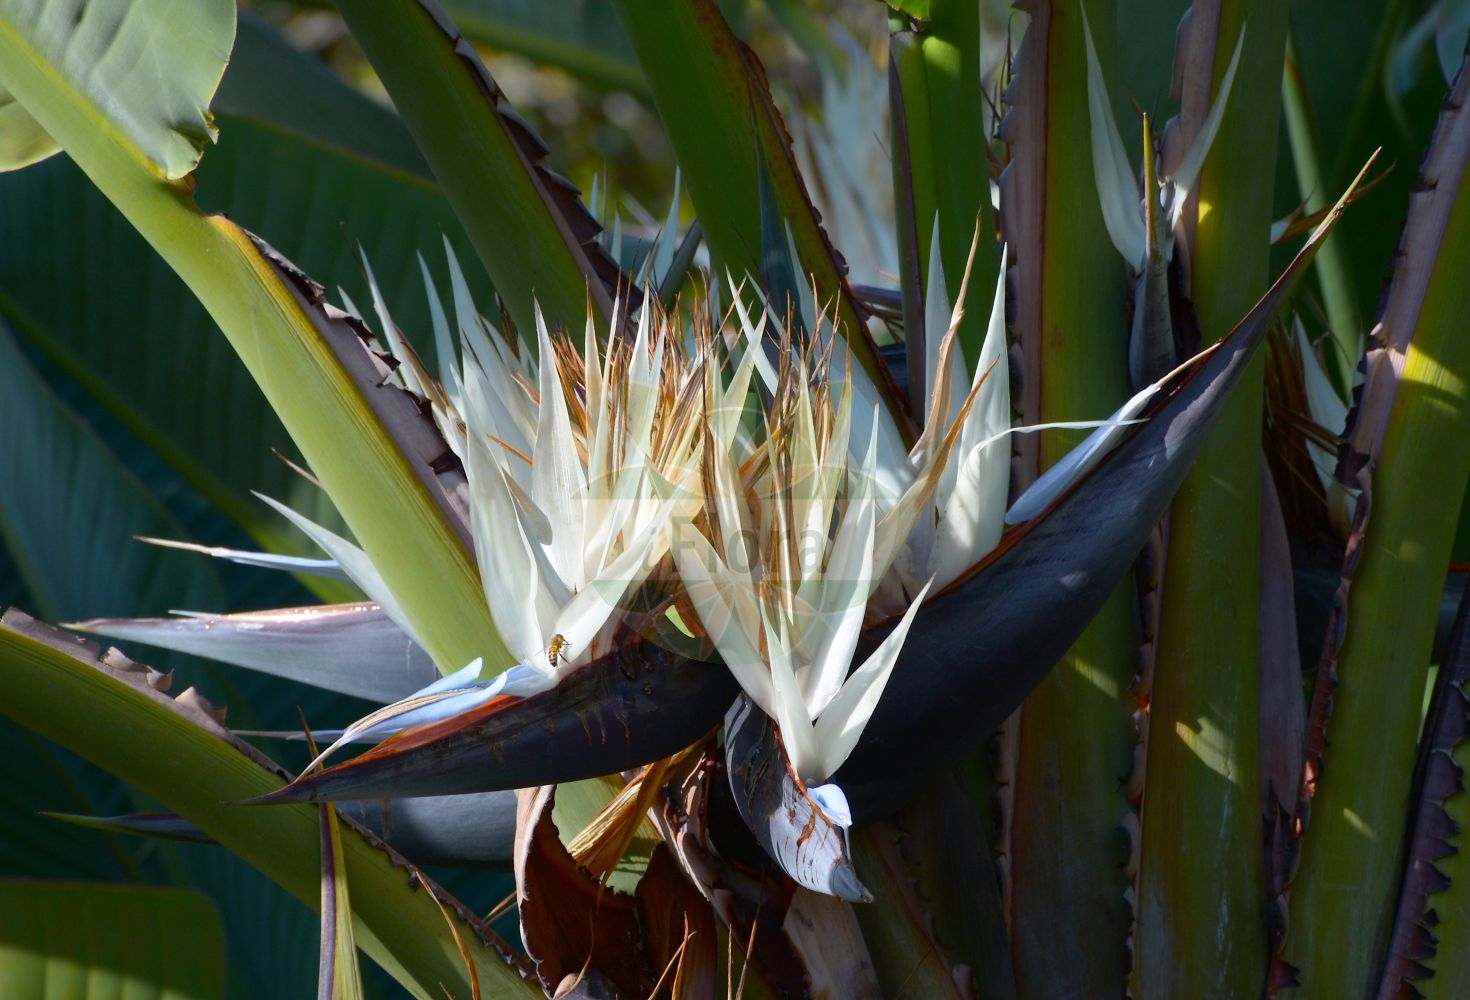 Foto von Strelitzia nicolai. Das Bild zeigt Blatt und Bluete. Das Foto wurde in San Remo, Liguria, Italien aufgenommen. ---- Photo of Strelitzia nicolai.The image is showing leaf and flower.The picture was taken in San Remo, Liguria, Italy.(Strelitzia nicolai,Strelitzia,Strelitziaceae,Blatt,Bluete,leaf,flower)